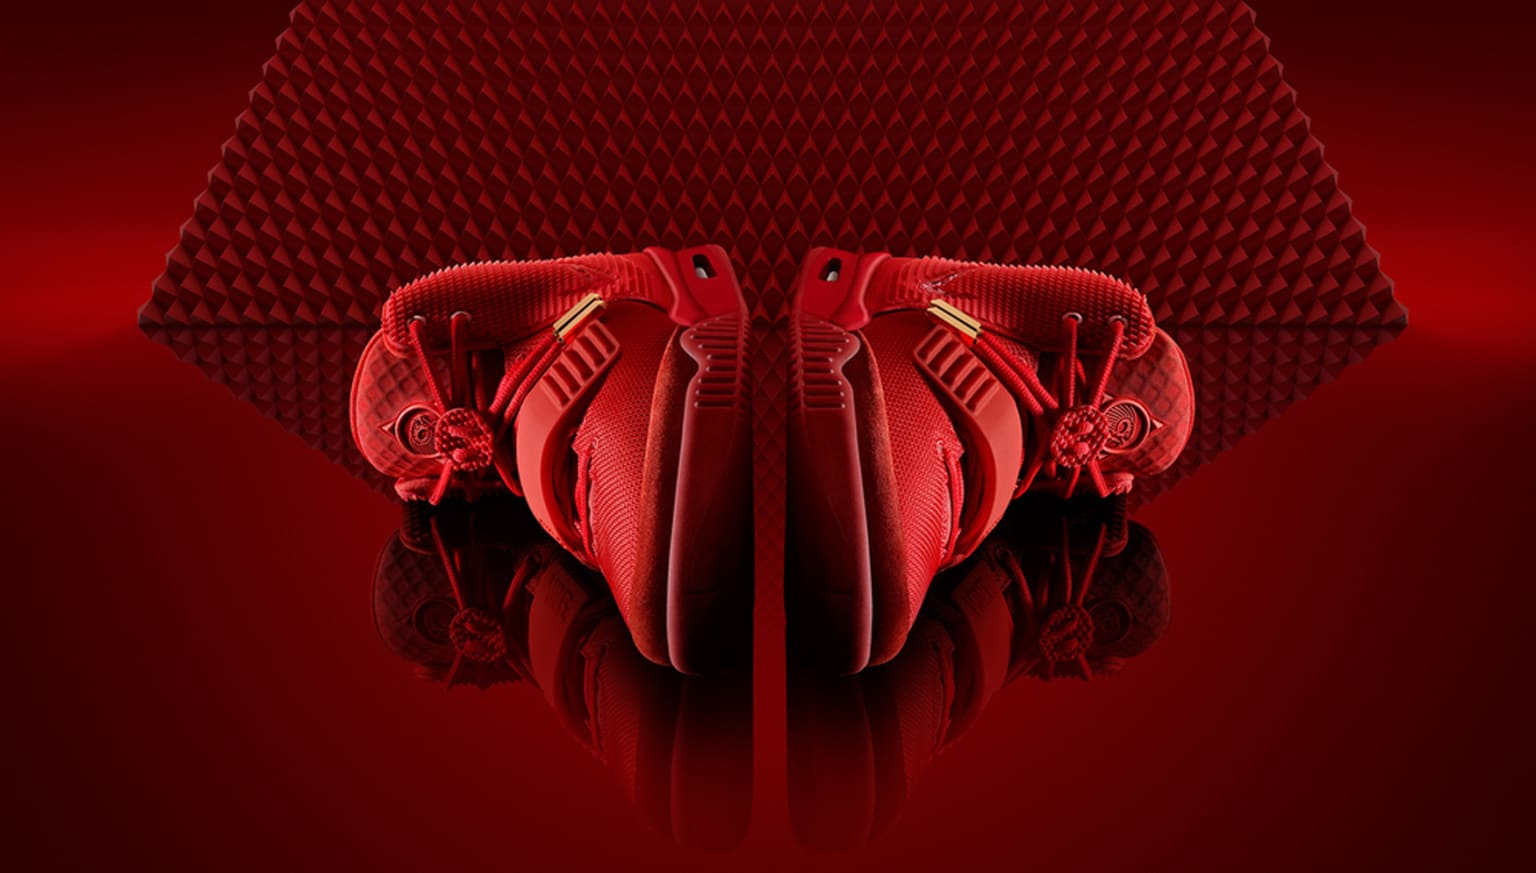 Nike & Kanye West - Red Octobers